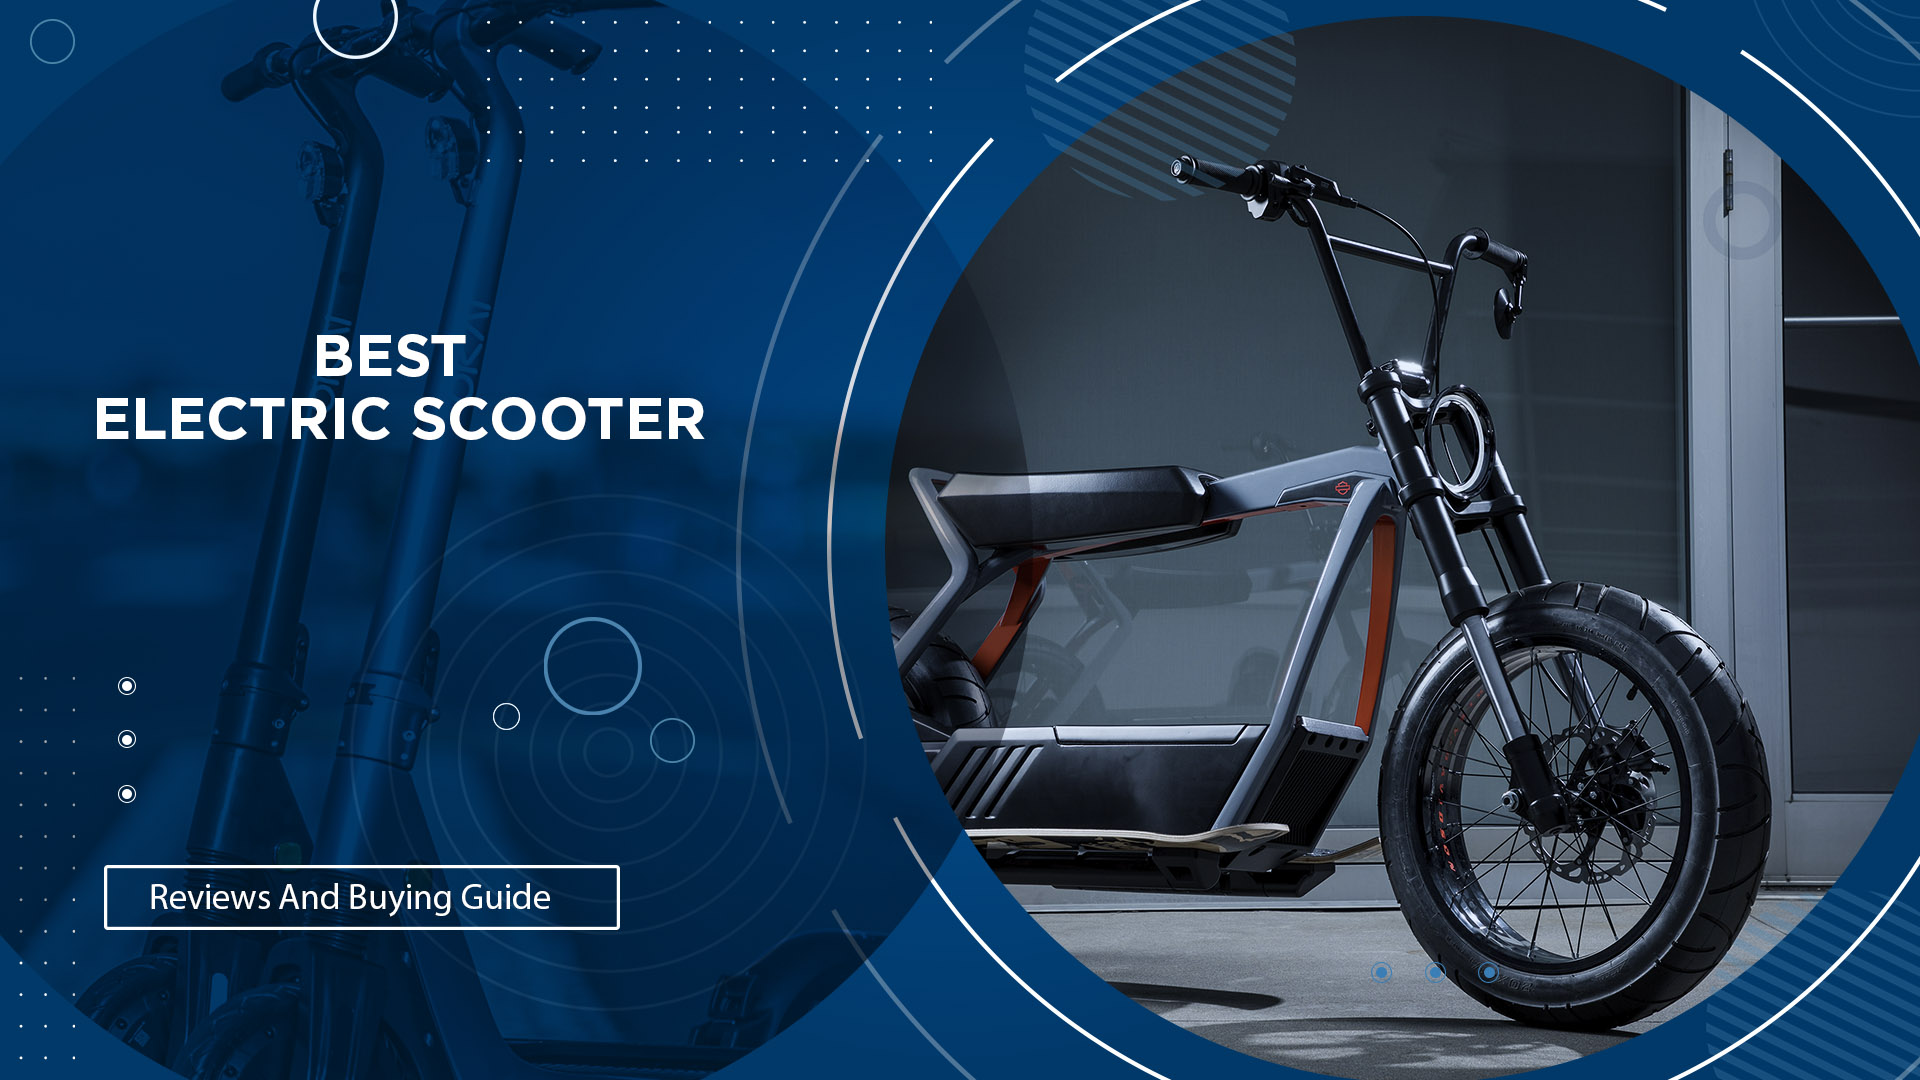 Buy Electric Scooter now